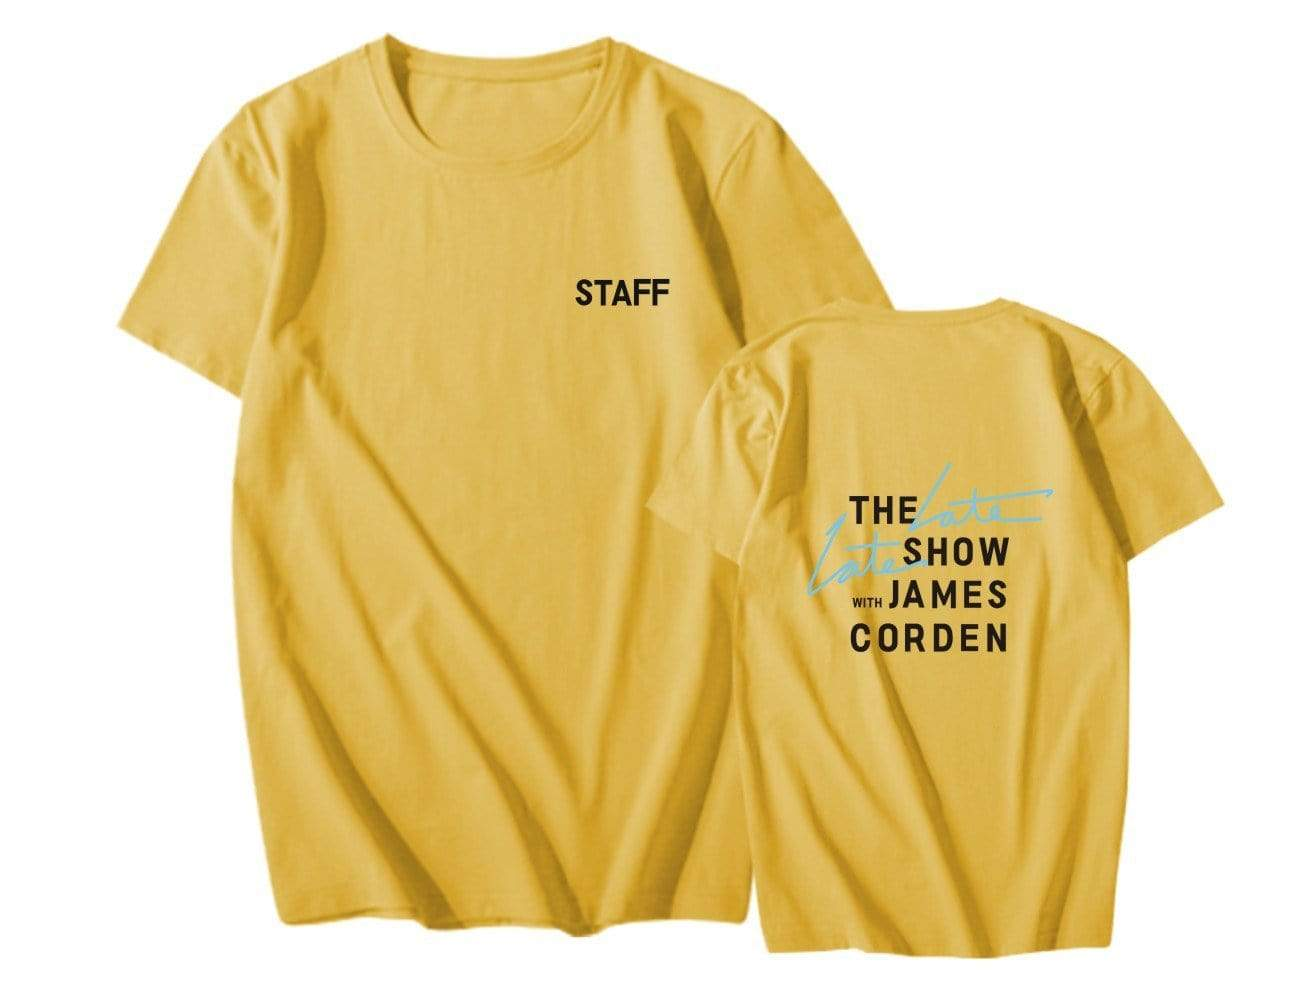 SEVENTEEN THE Late Late Show T-shirt